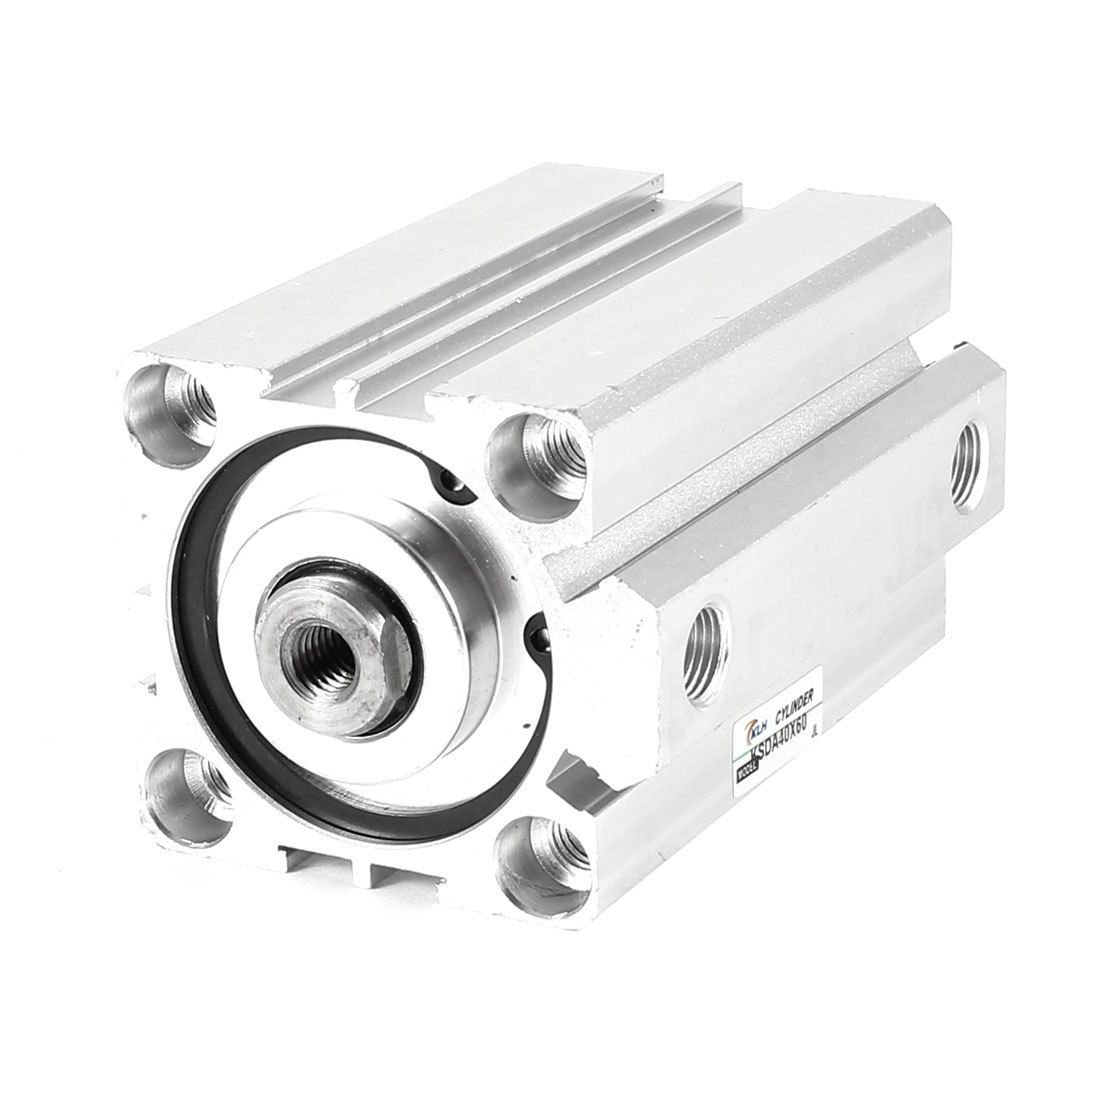 1 Pcs 63mm Bore 90mm Stroke Stainless steel Pneumatic Air Cylinder SDA63-90<br>